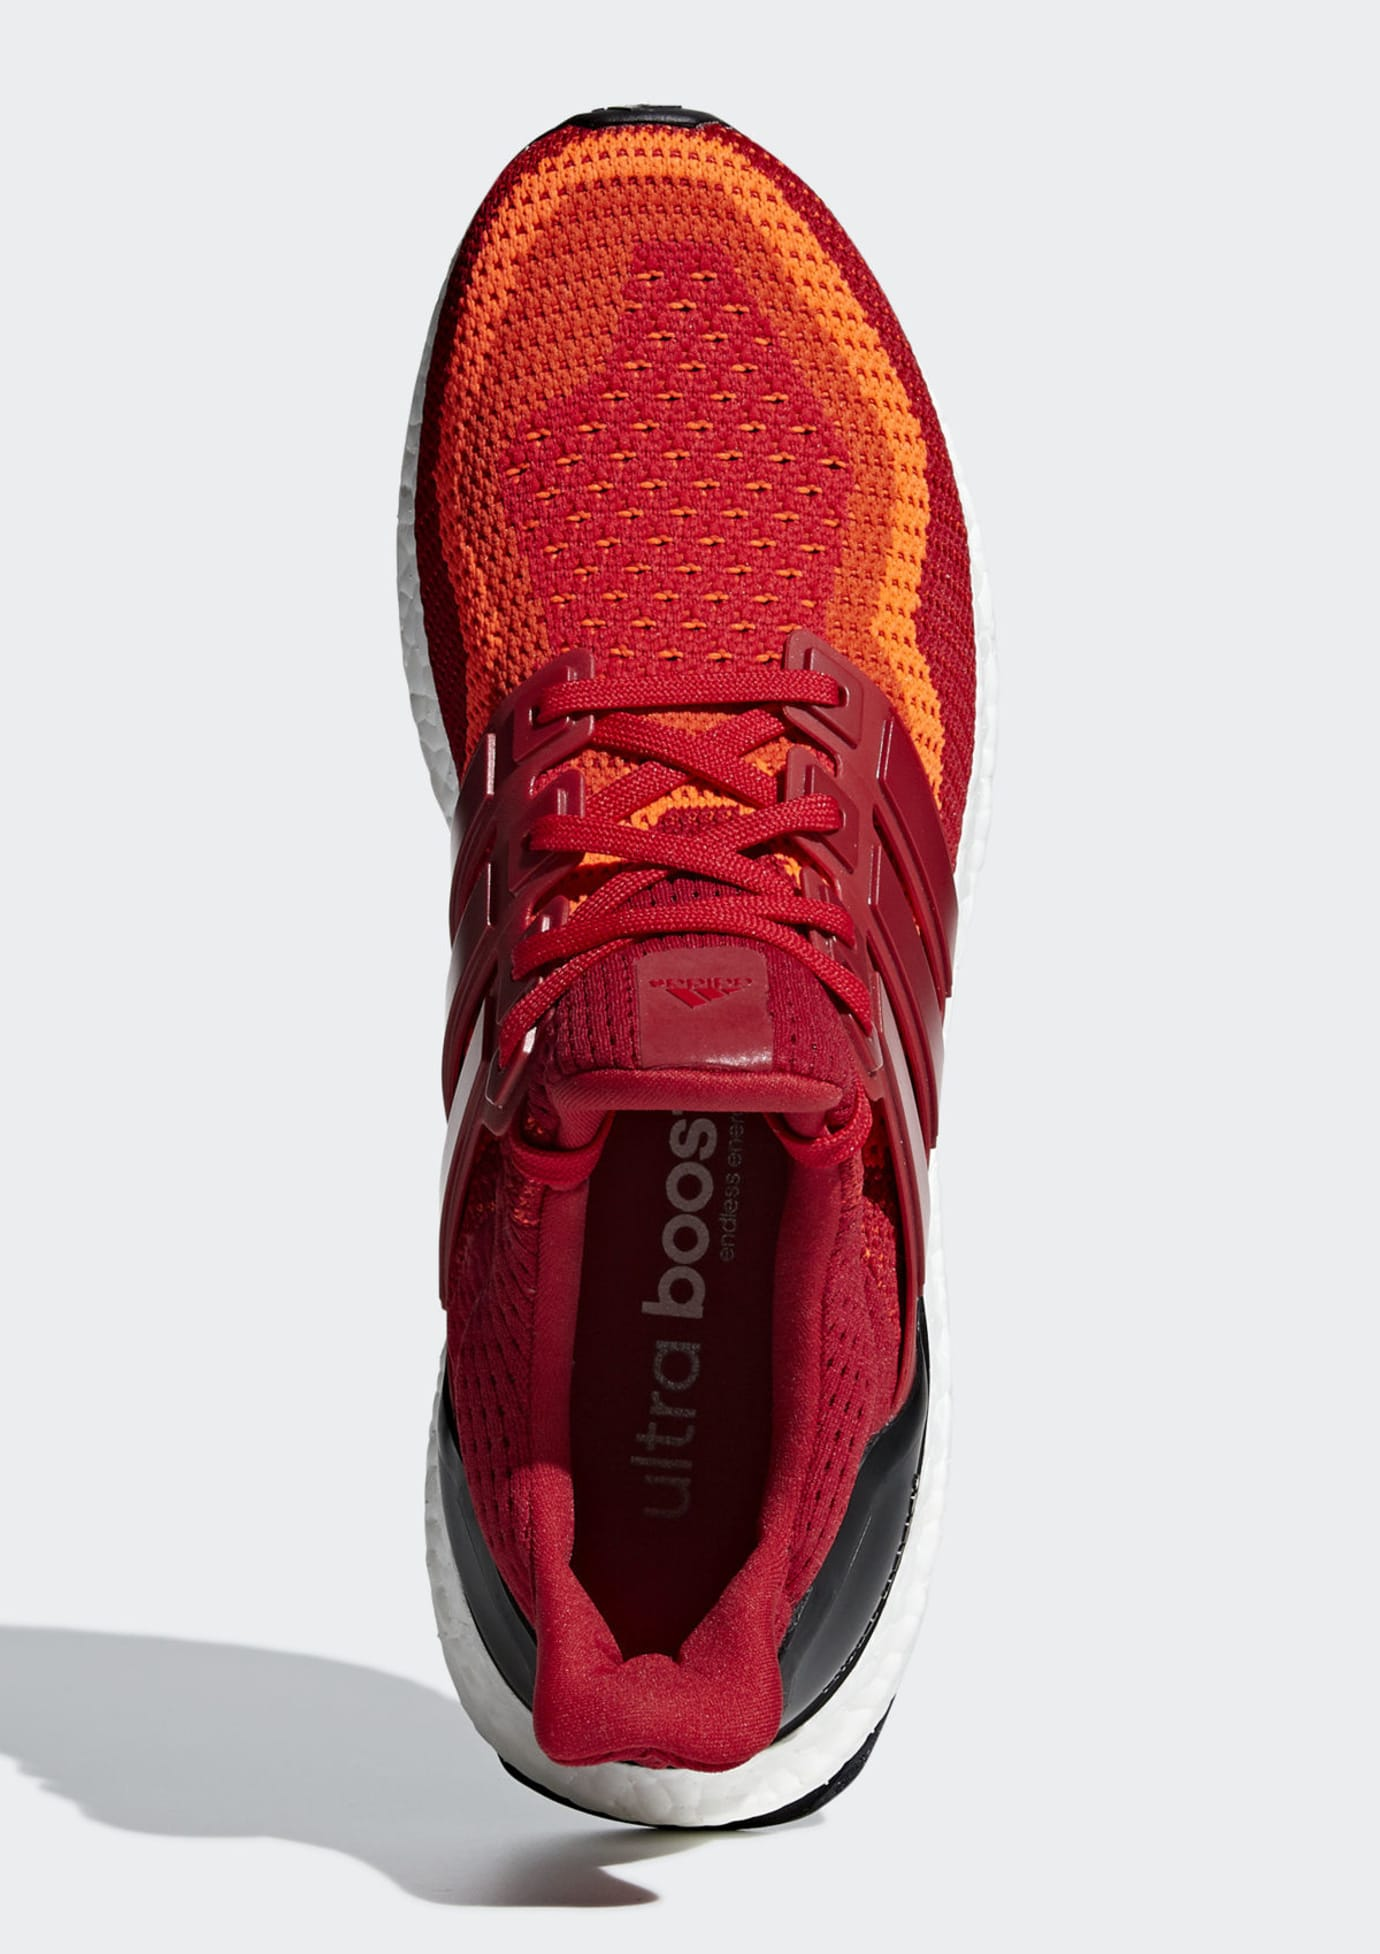 adidas-ultra-boost-2-0-red-gradient-aq4006-top